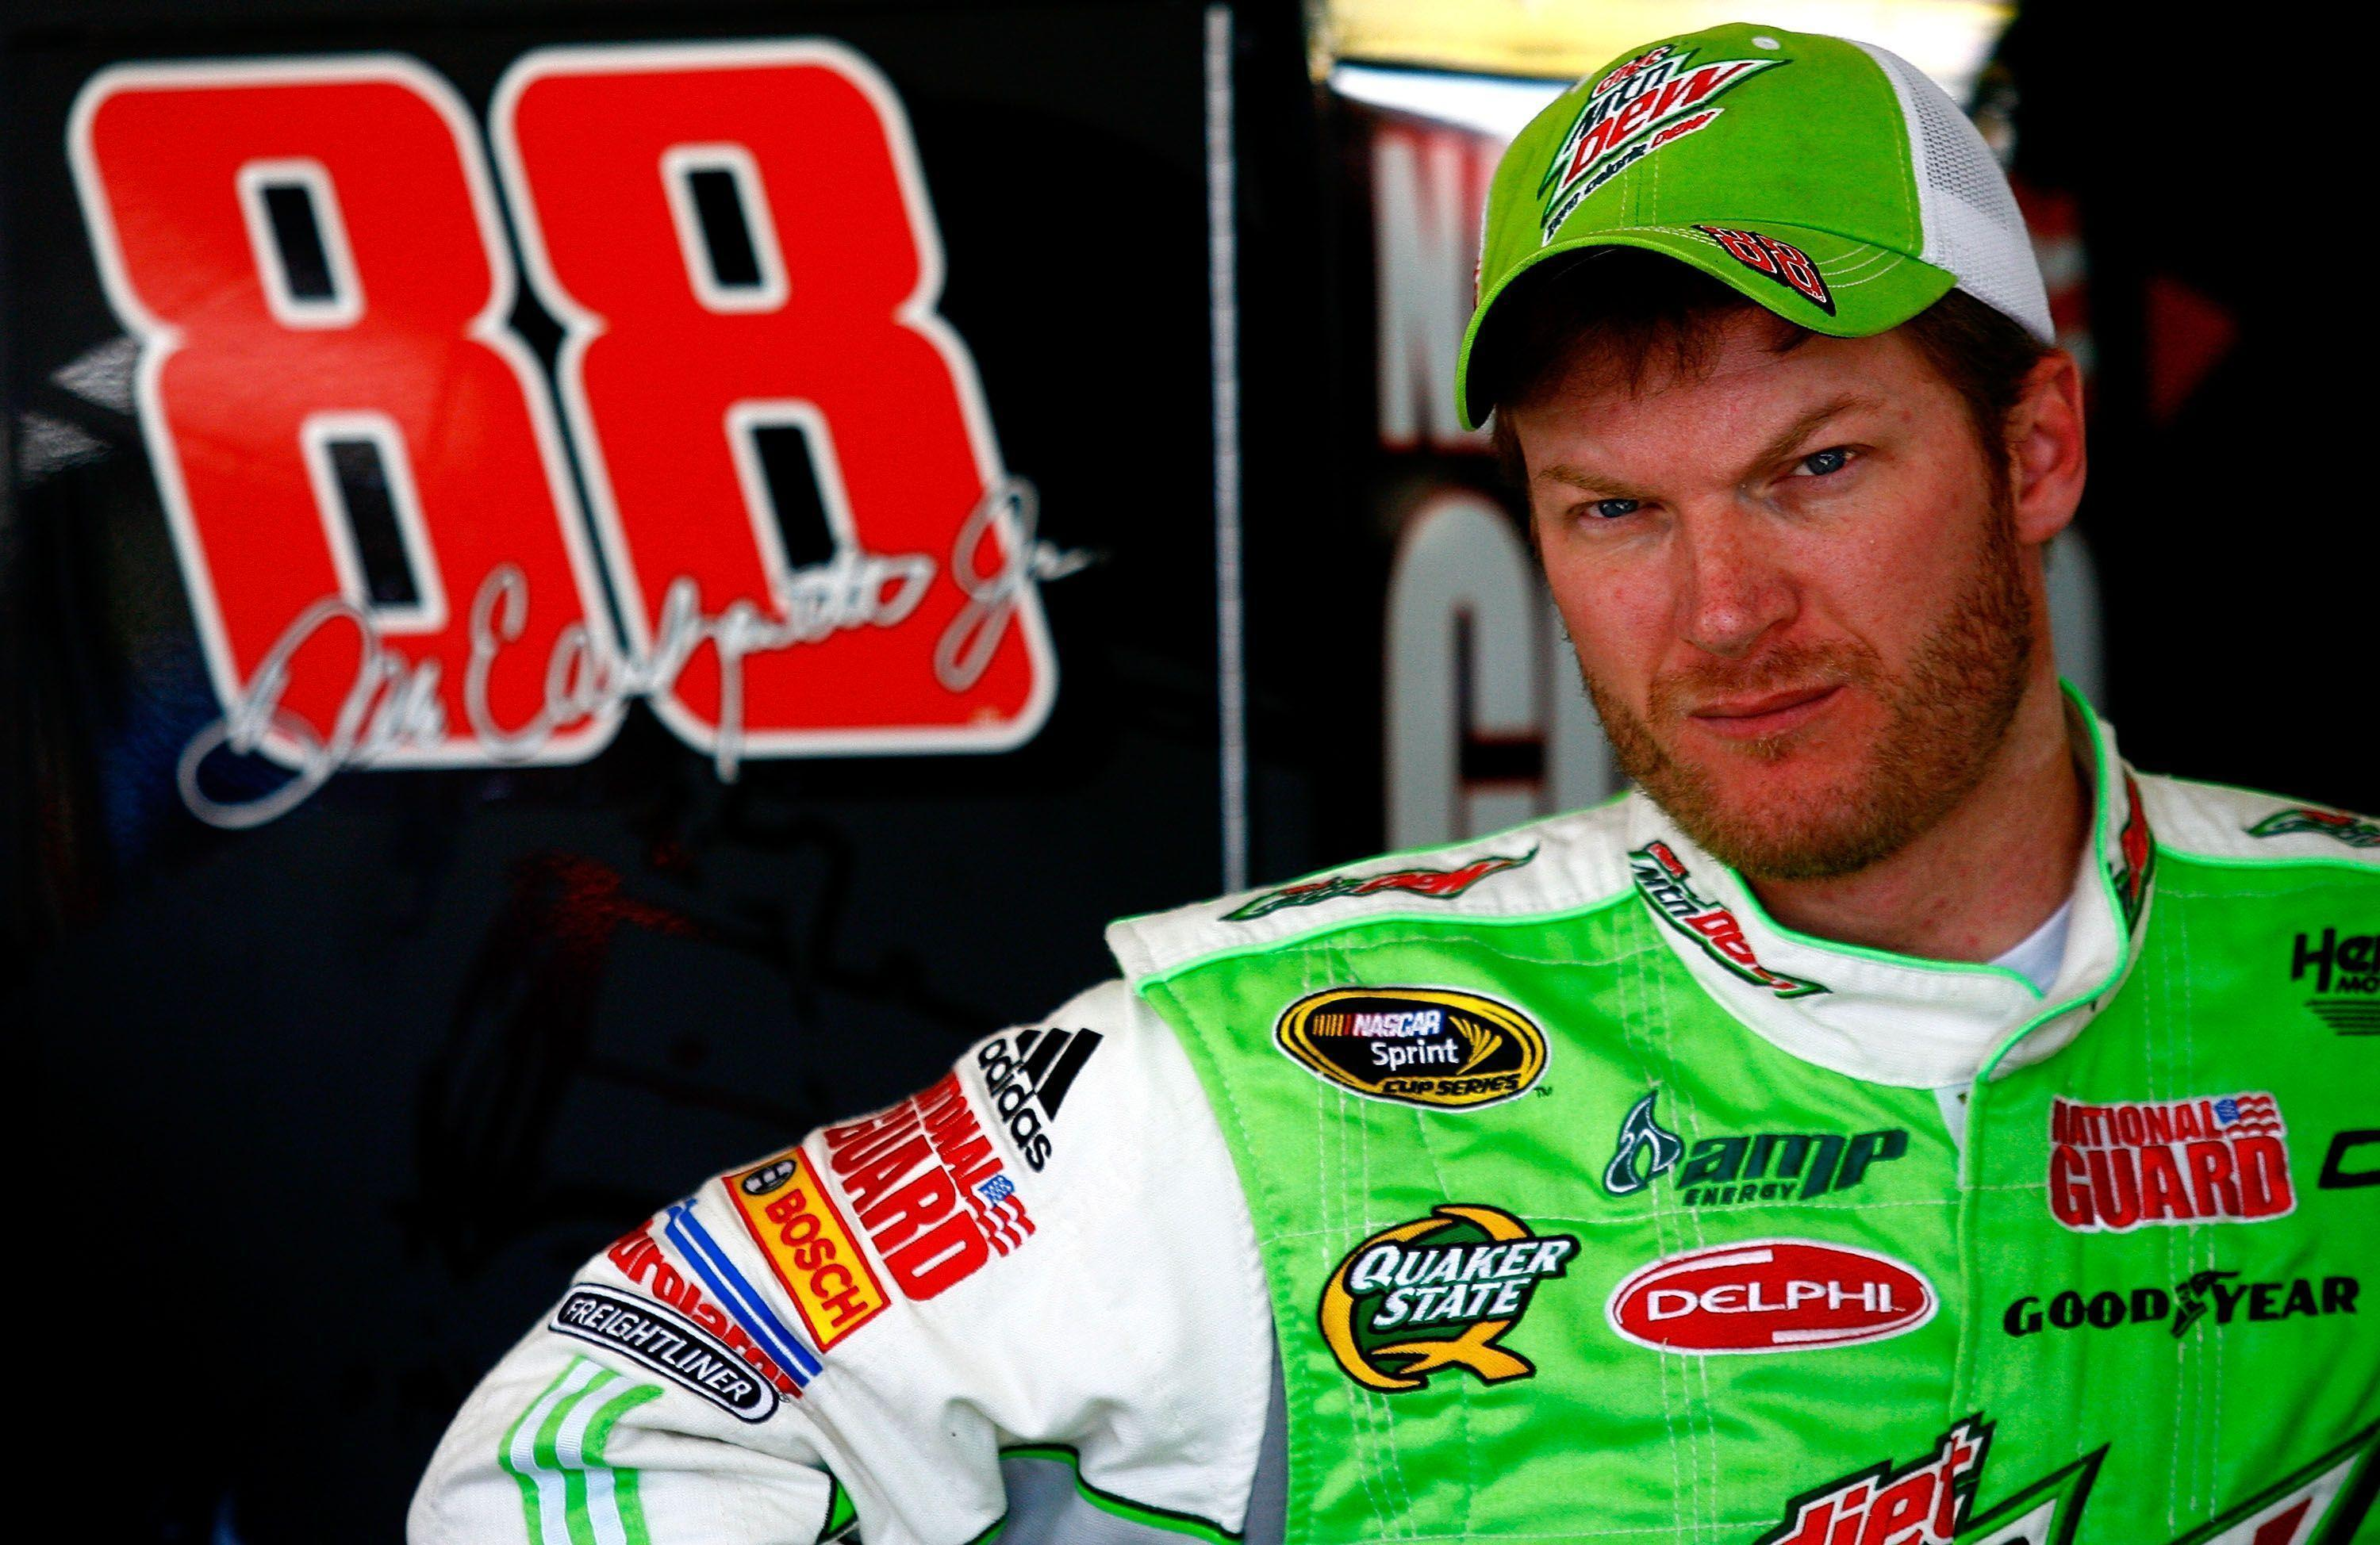 Dale Earnhardt Wallpaper 63 Image Collections Of: Dale Earnhardt Jr Wallpapers